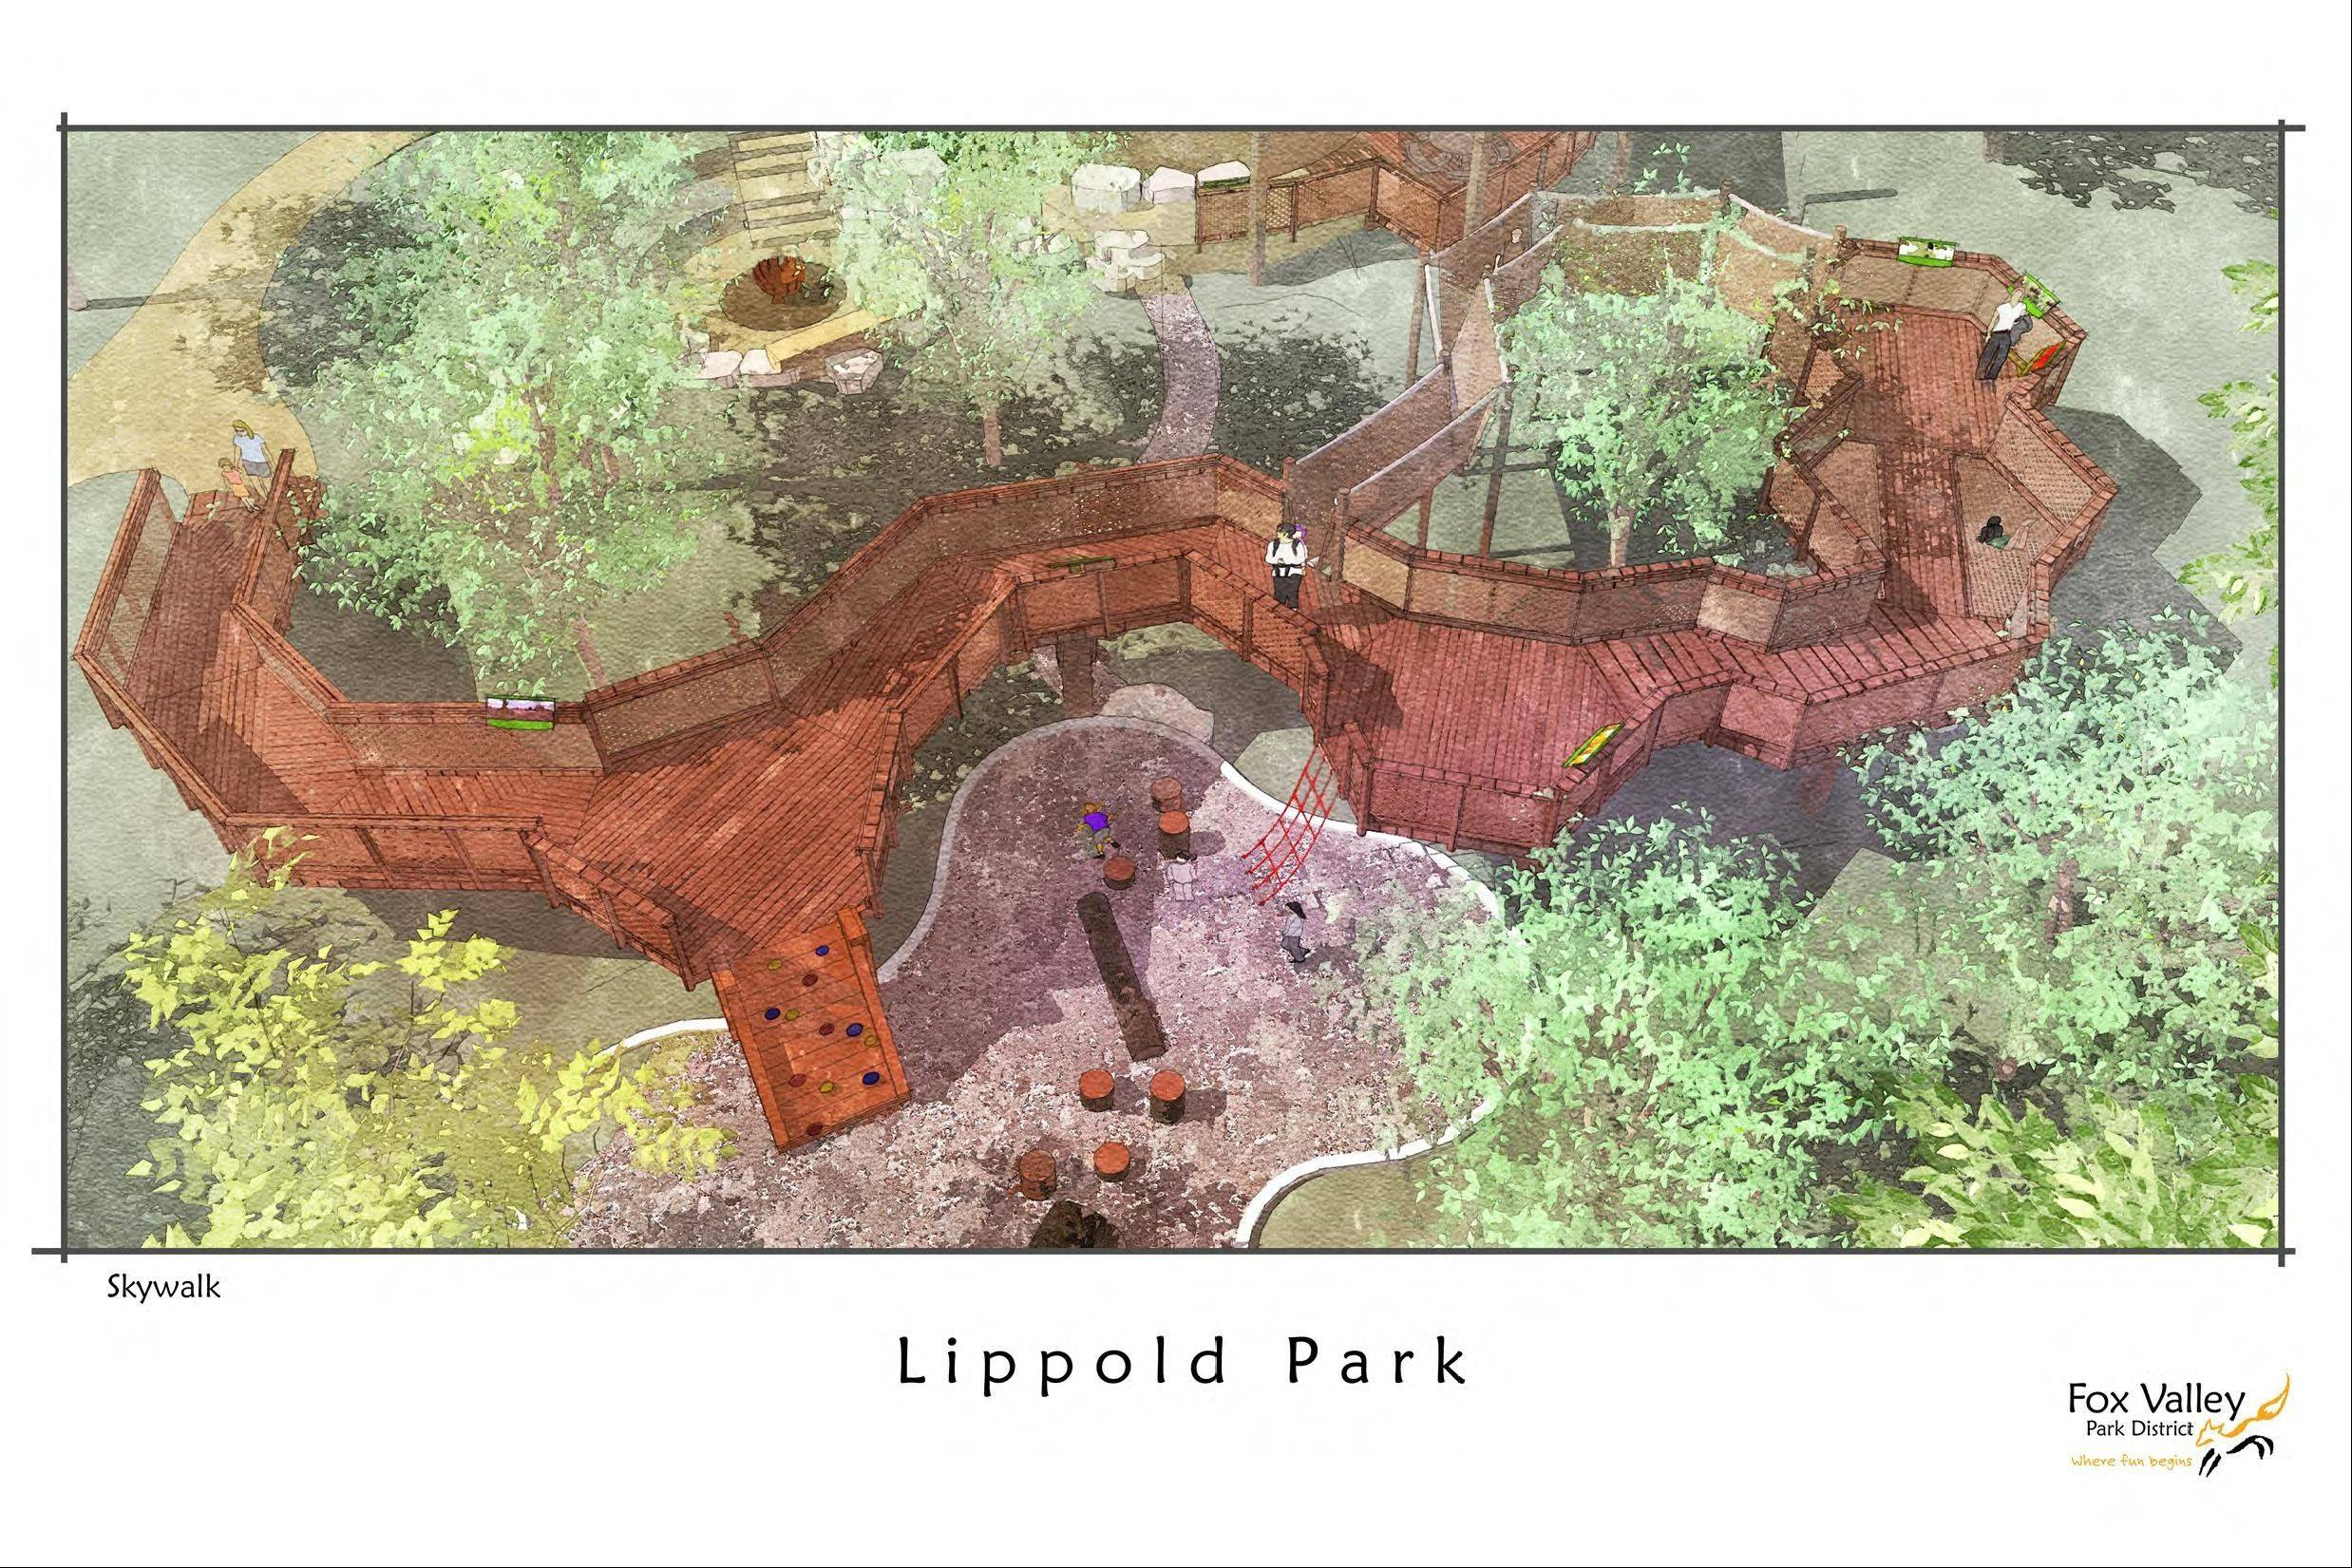 Lippold Park's improvement plans feature an accessible skywalk that will run around a portion of the perimeter.